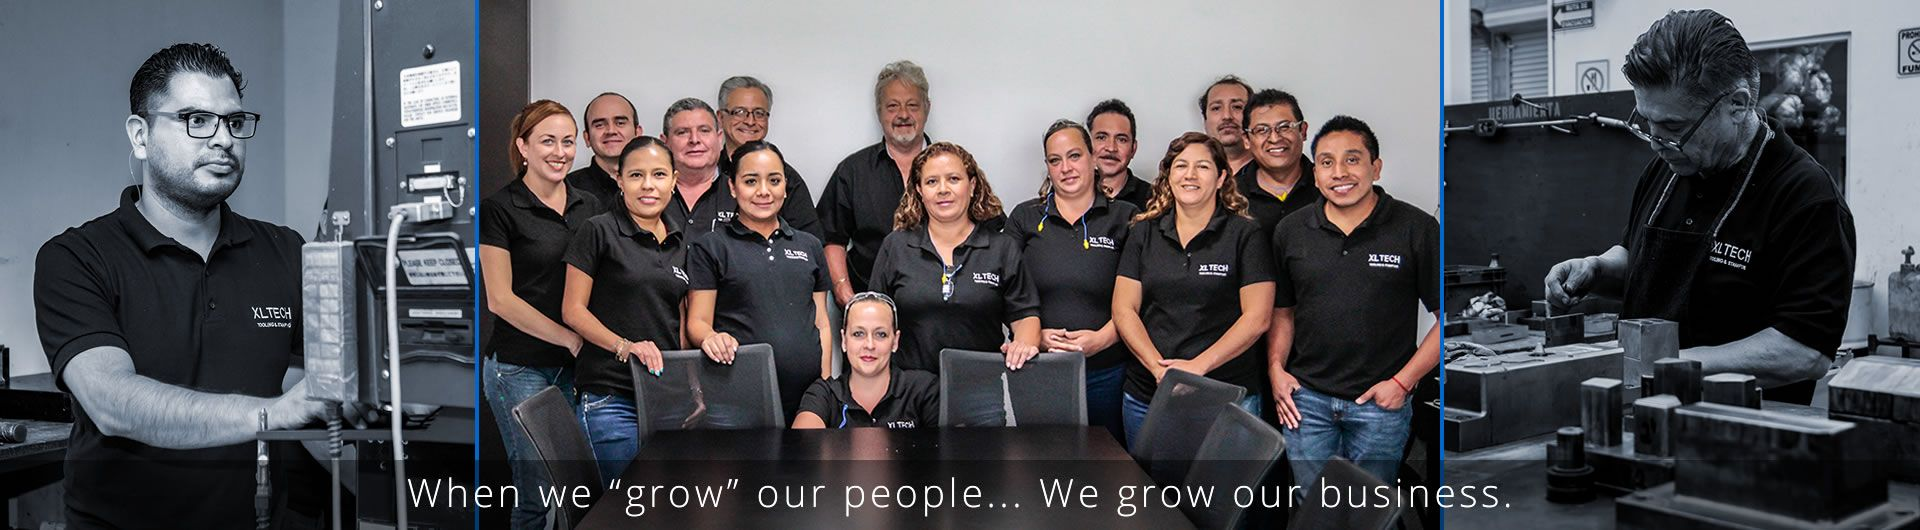 About Us - Grow Your People... Grow Your Business